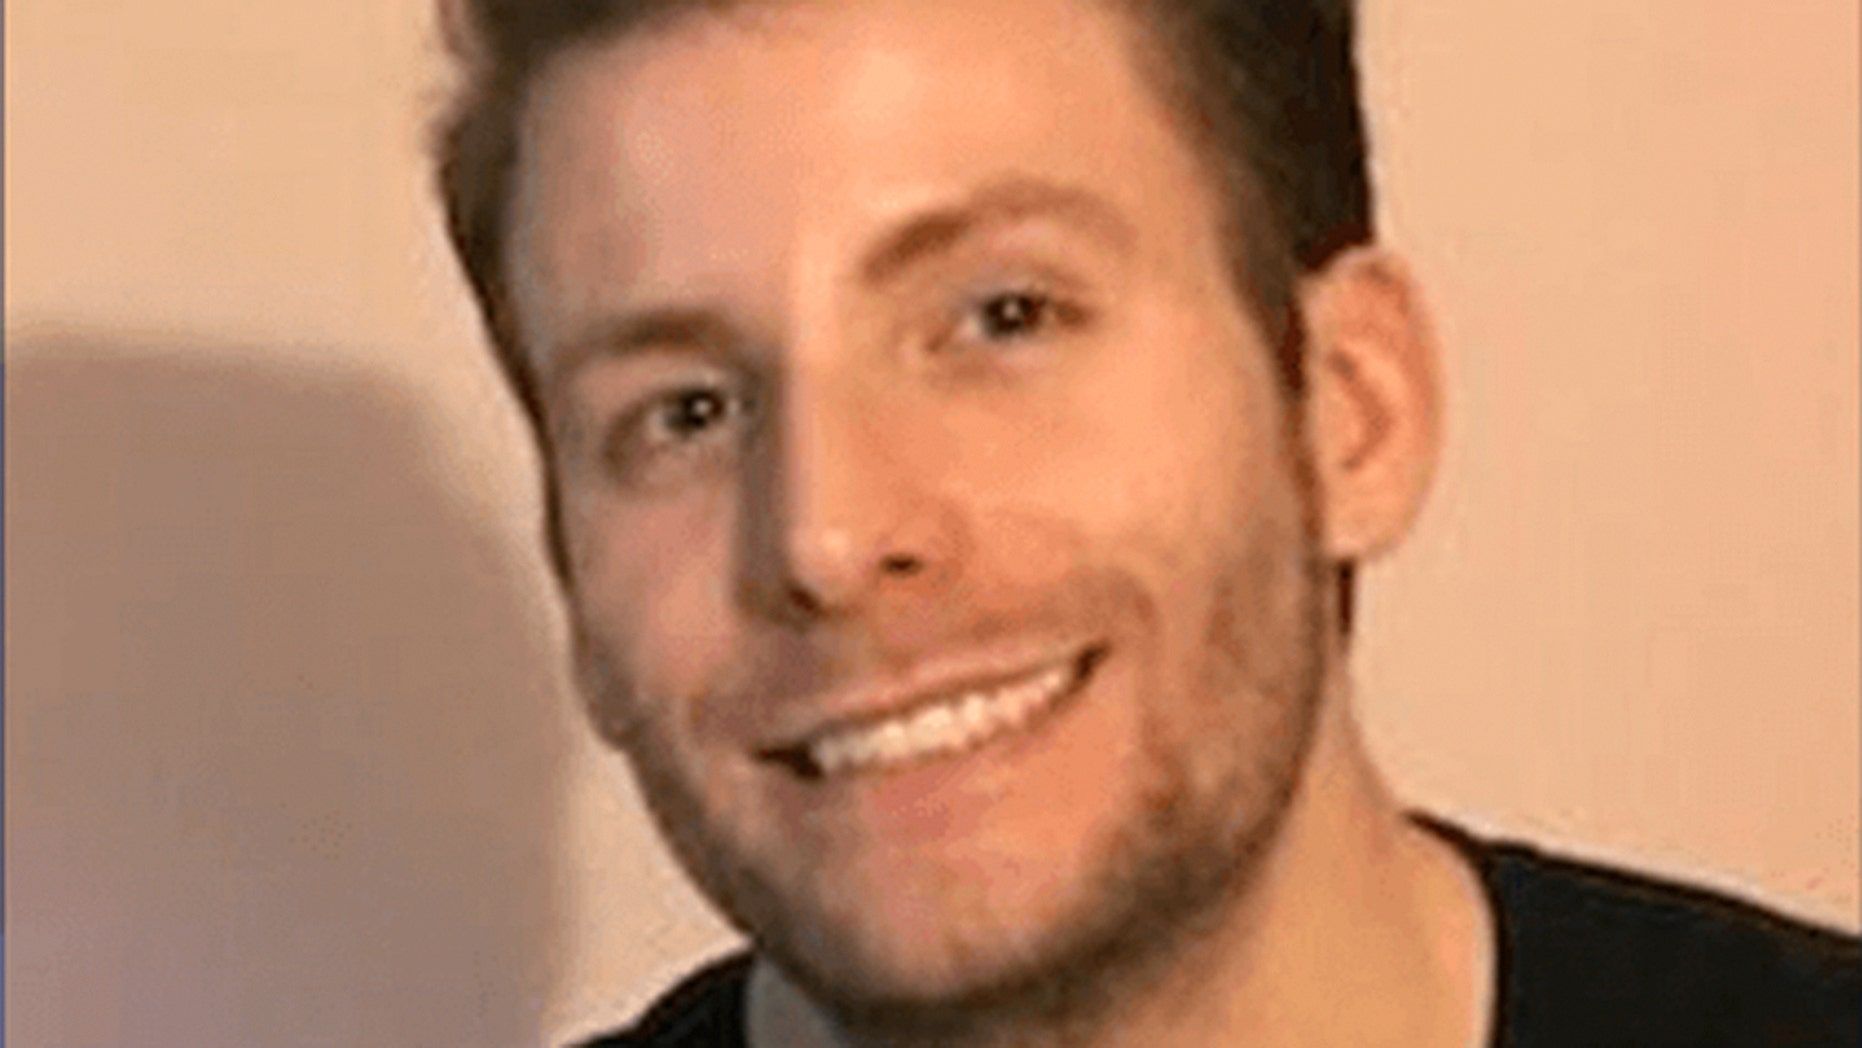 Zachary Meadors was found dead of an apparent self-inflicted gunshot wound after being accused of sexually assaulting a sixth-grade boy.